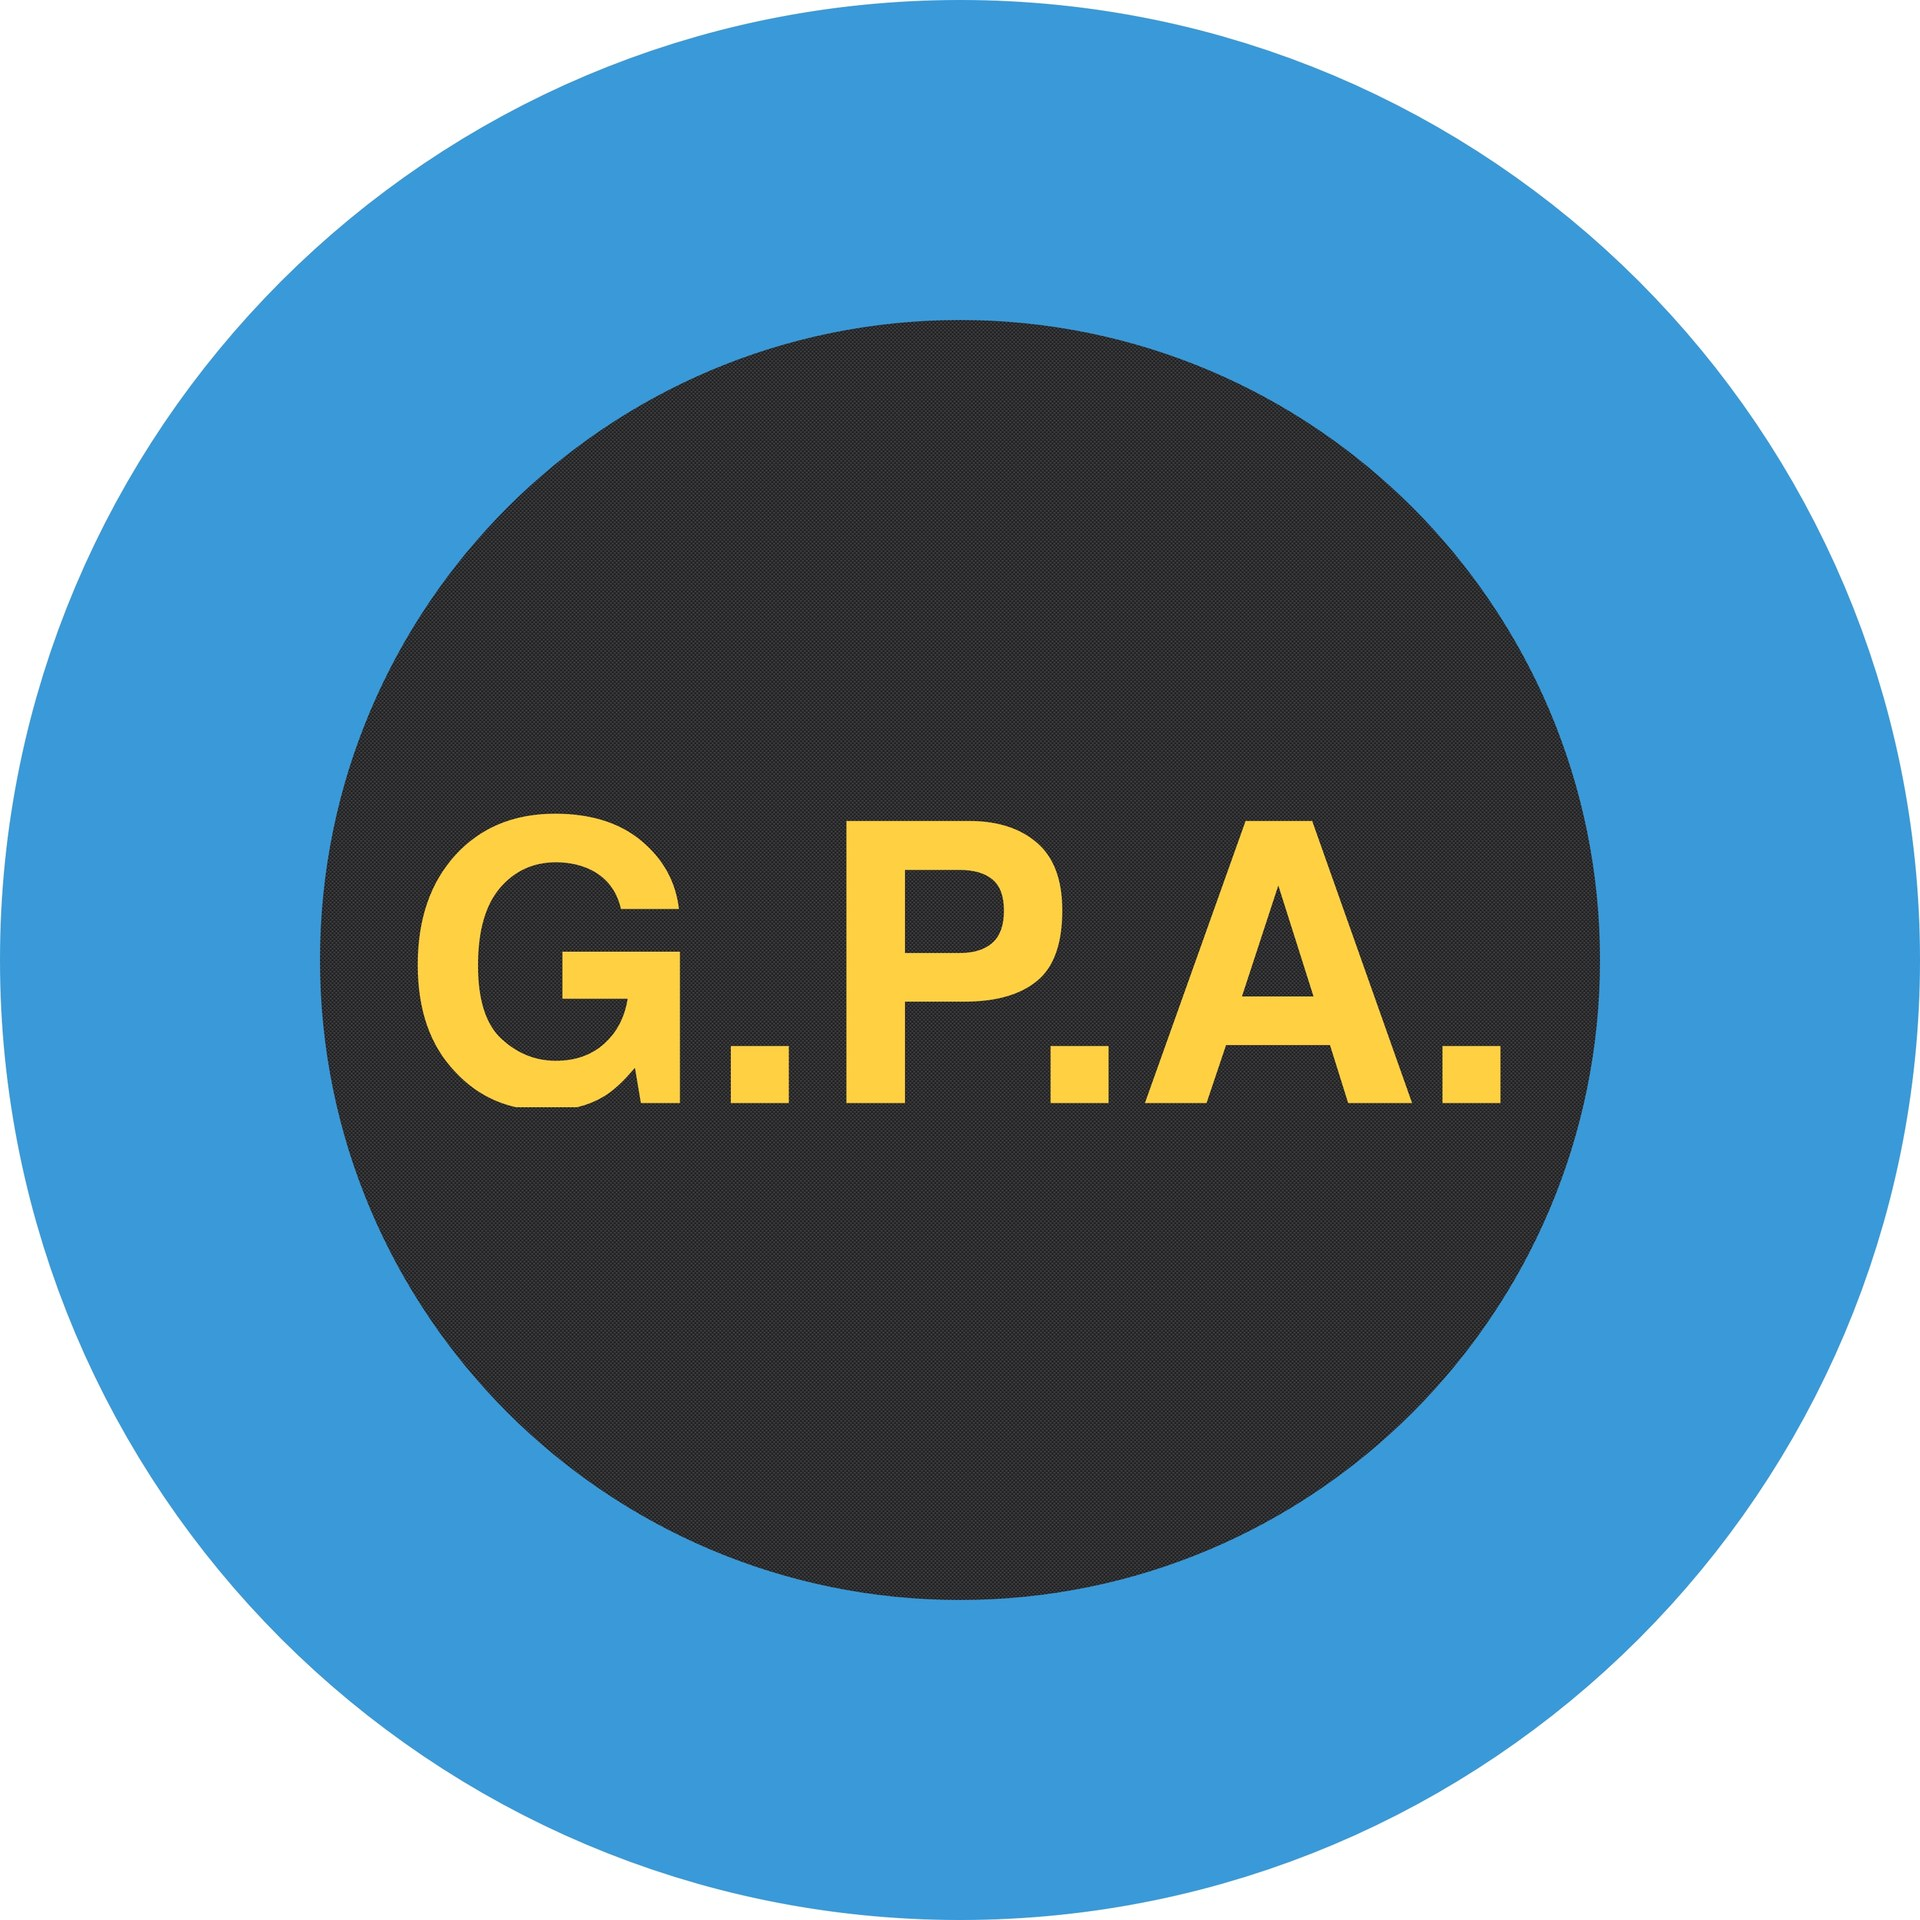 Graphic of GPA